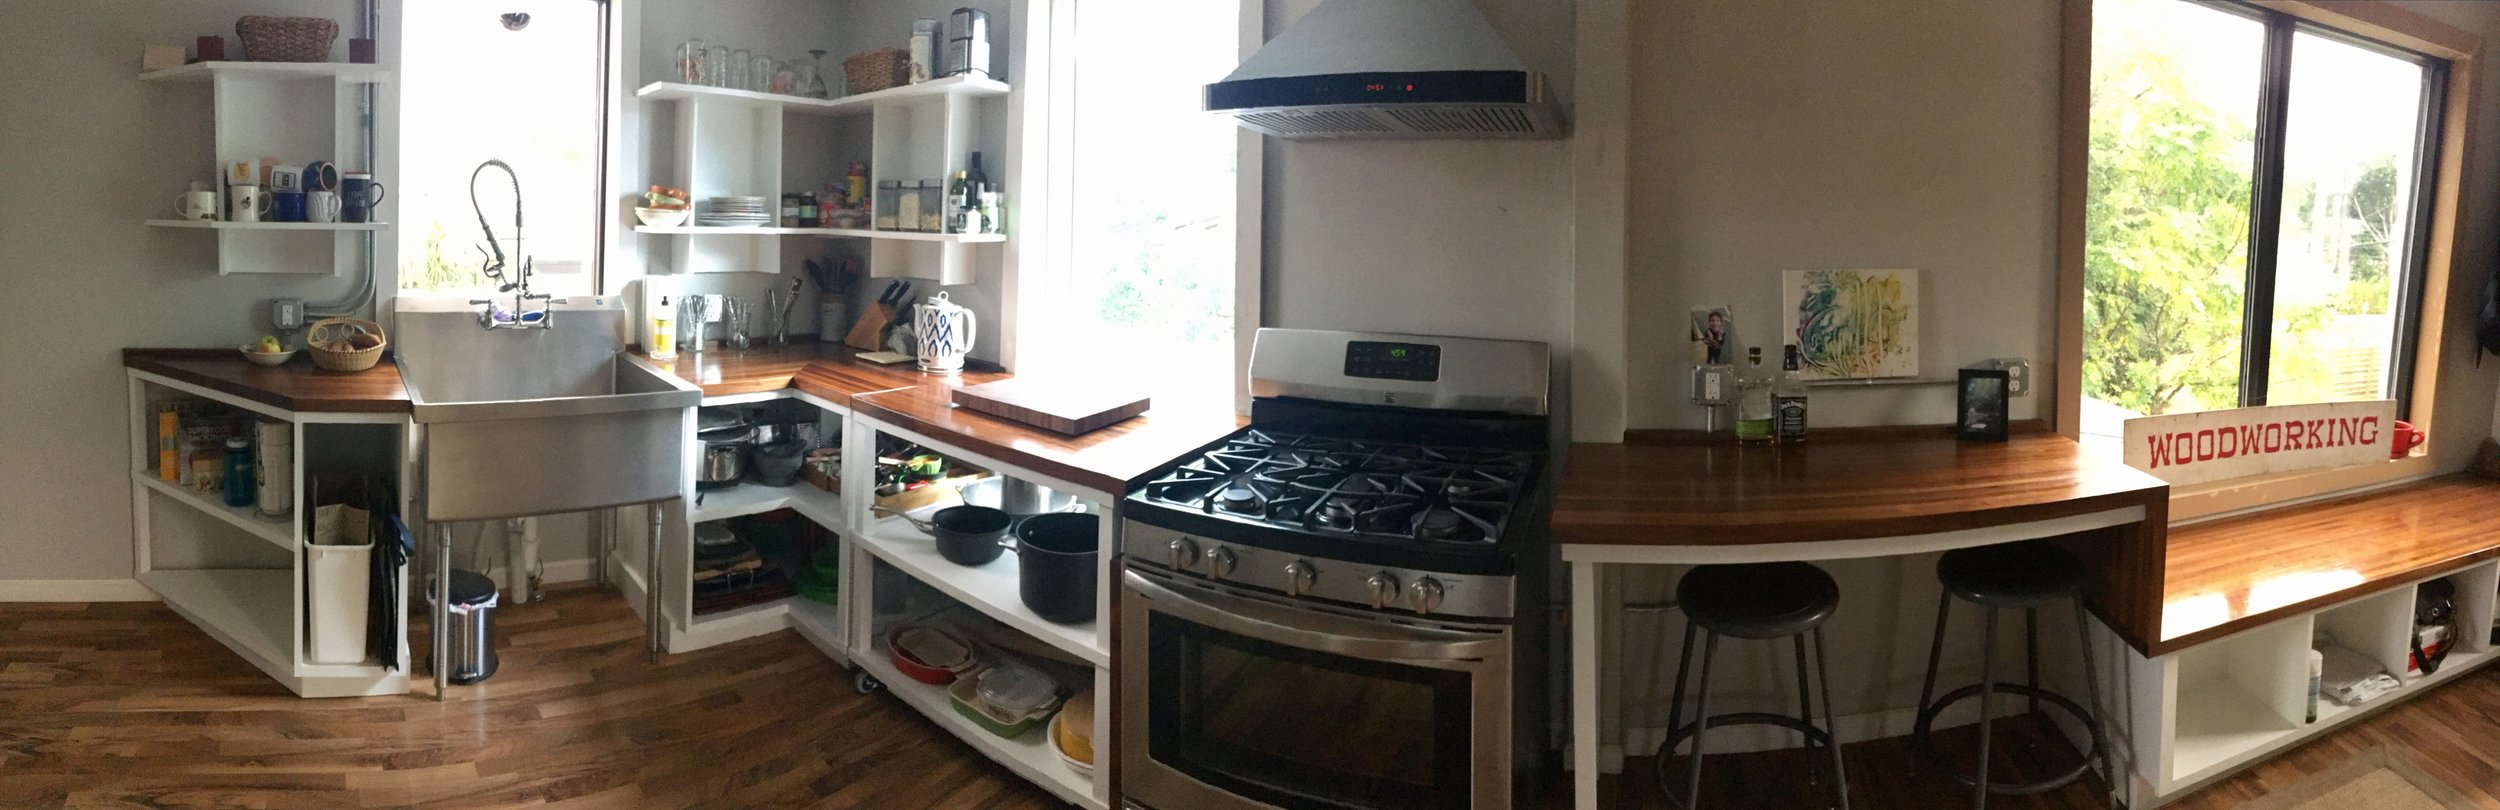 kitchen 1.jpg